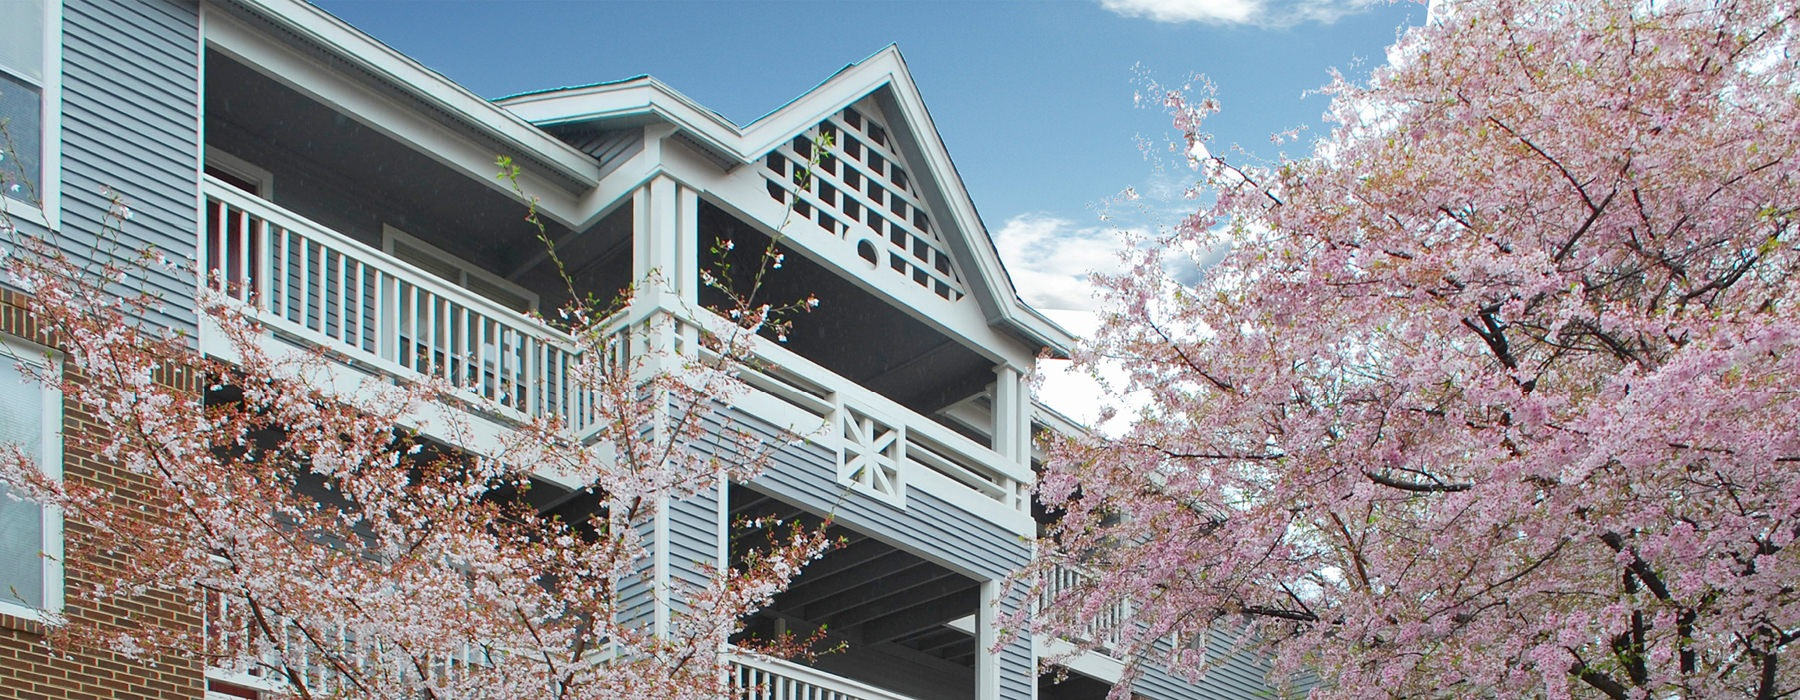 schedule a tour of our three-story apartment buildings with stairs